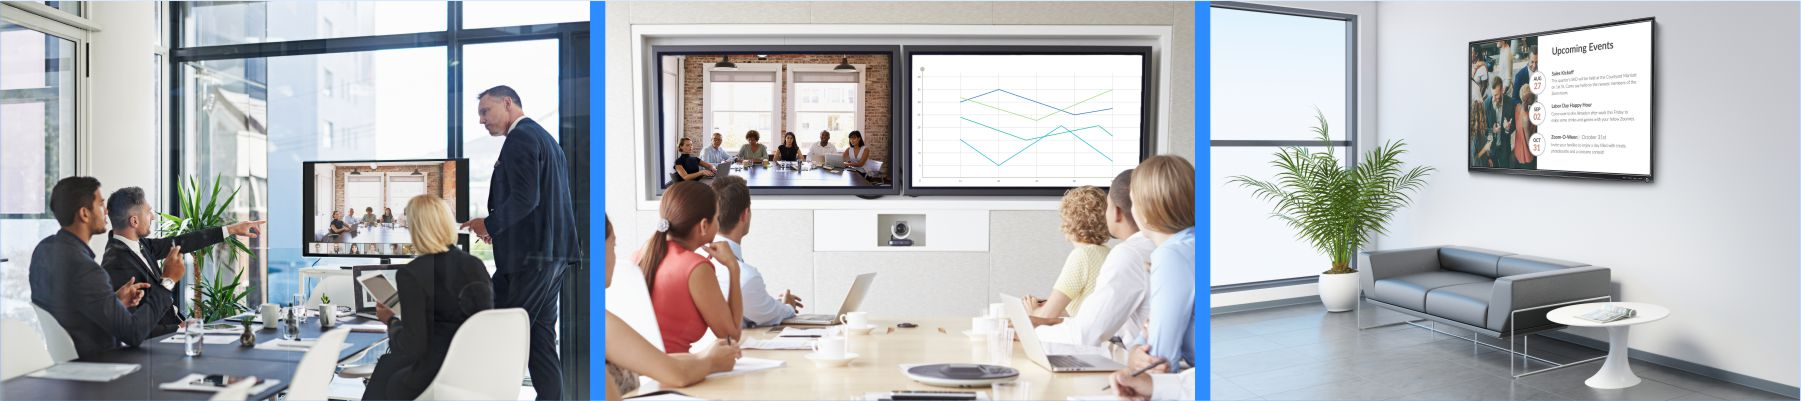 zoom-video-conferencing-rooms-main-130420